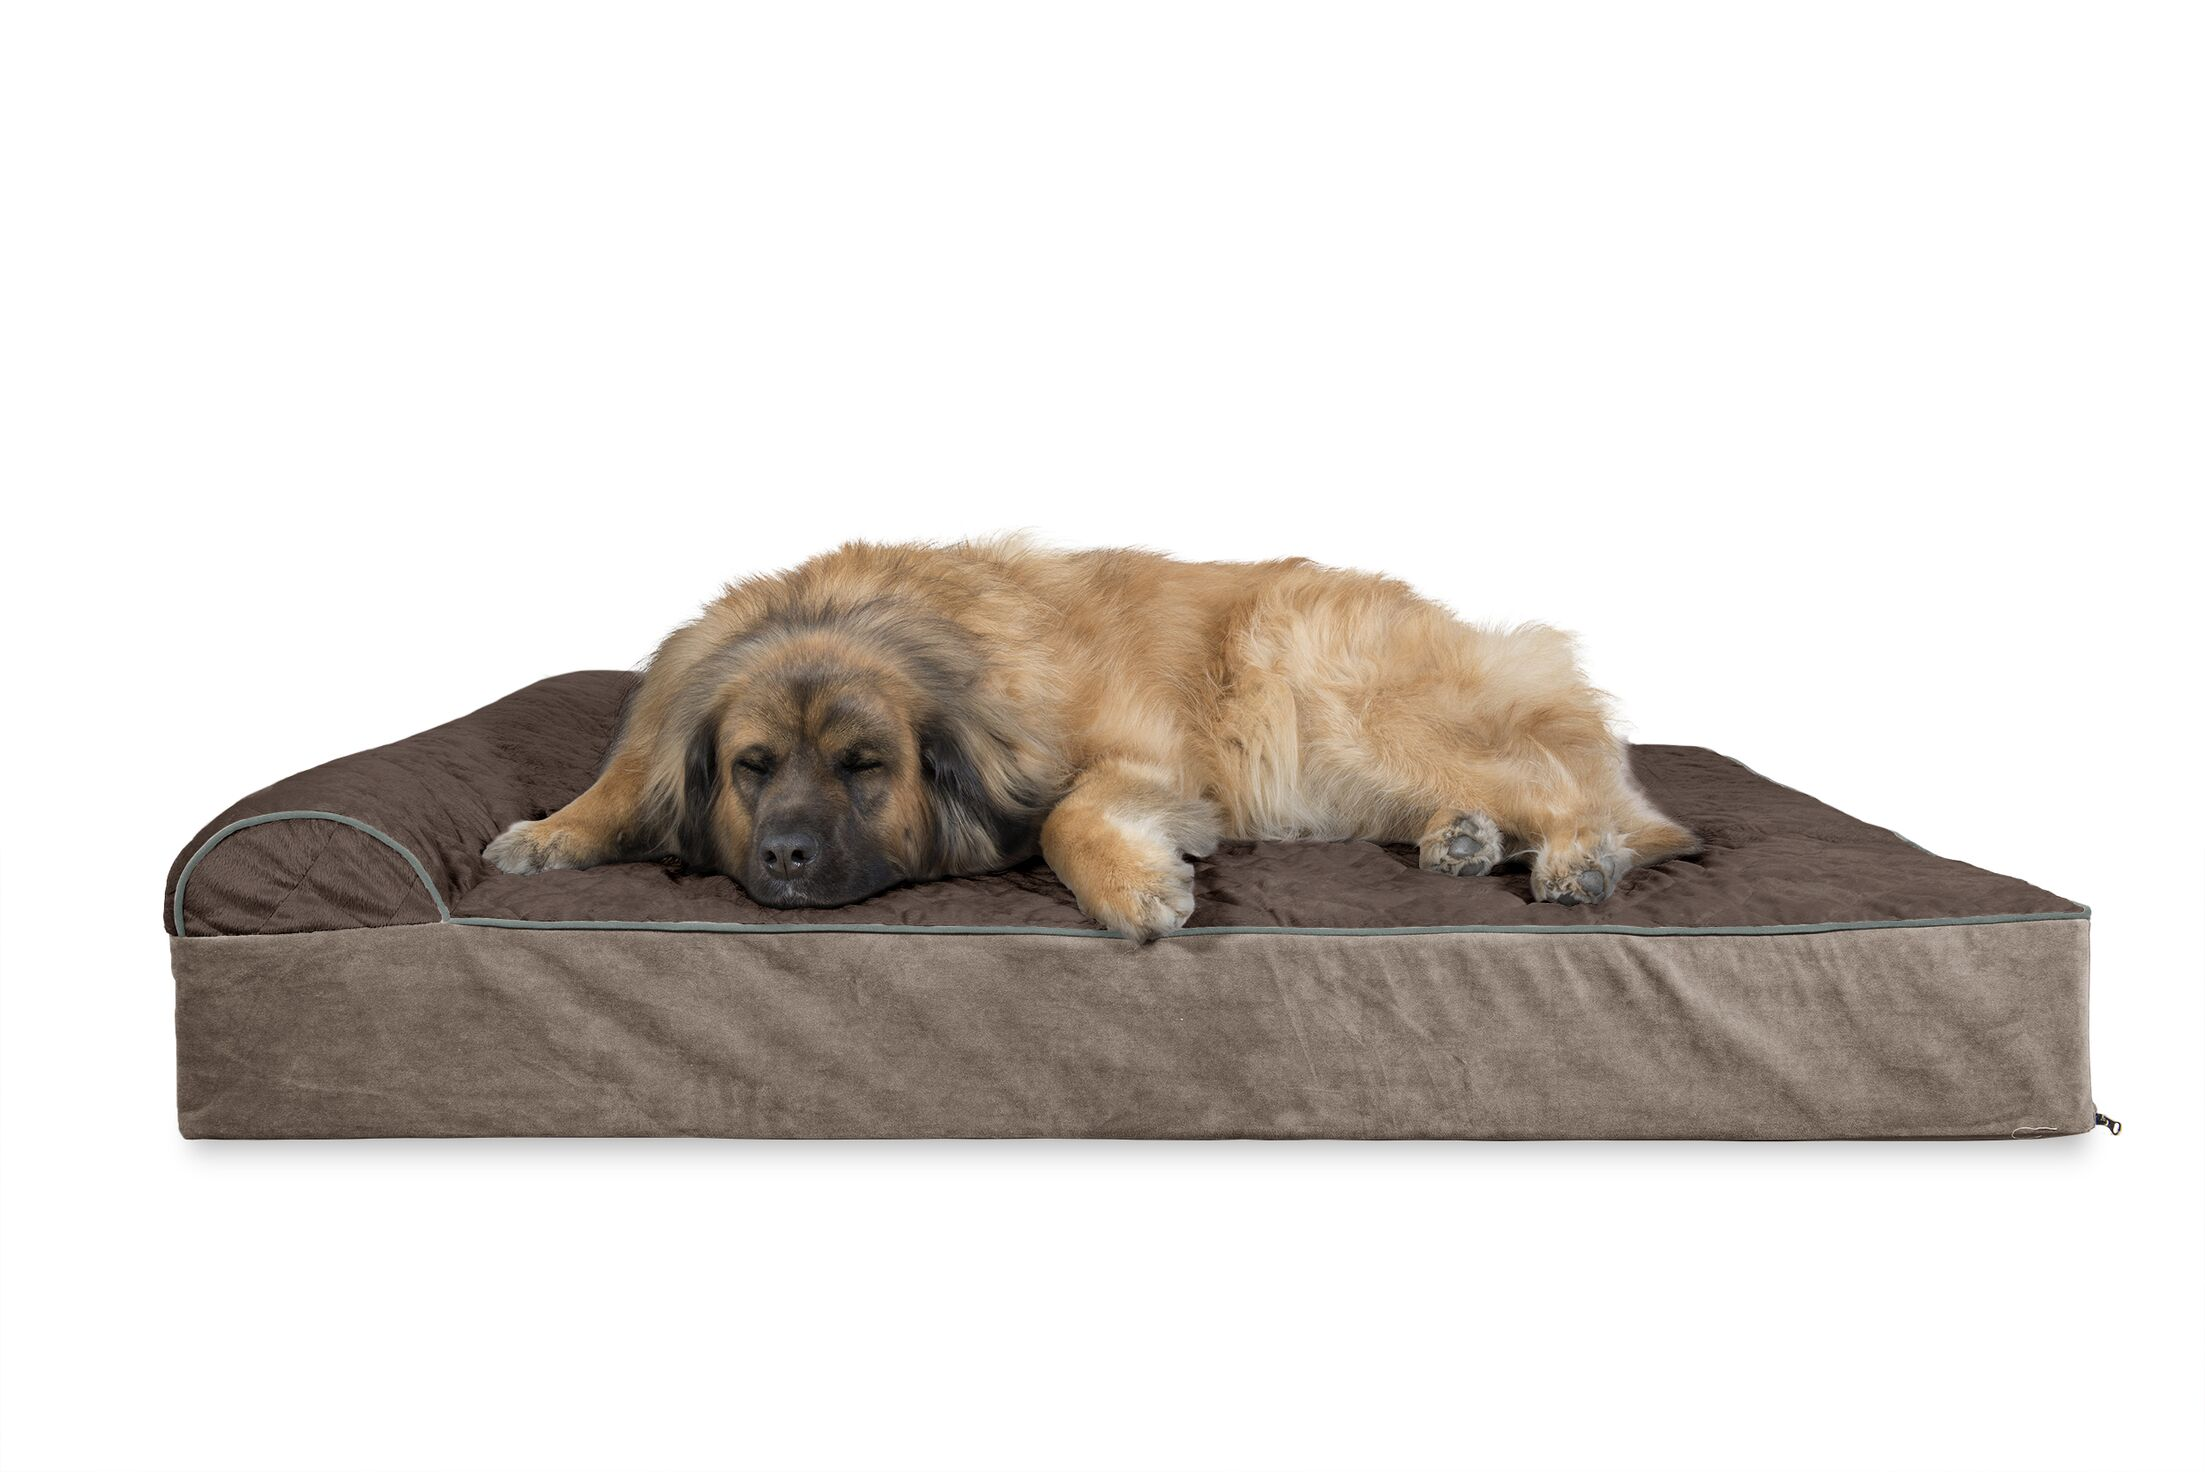 Digby Quilted Goliath Chaise Lounge Dog Sofa Color: Espresso, Size: Extra Large (11